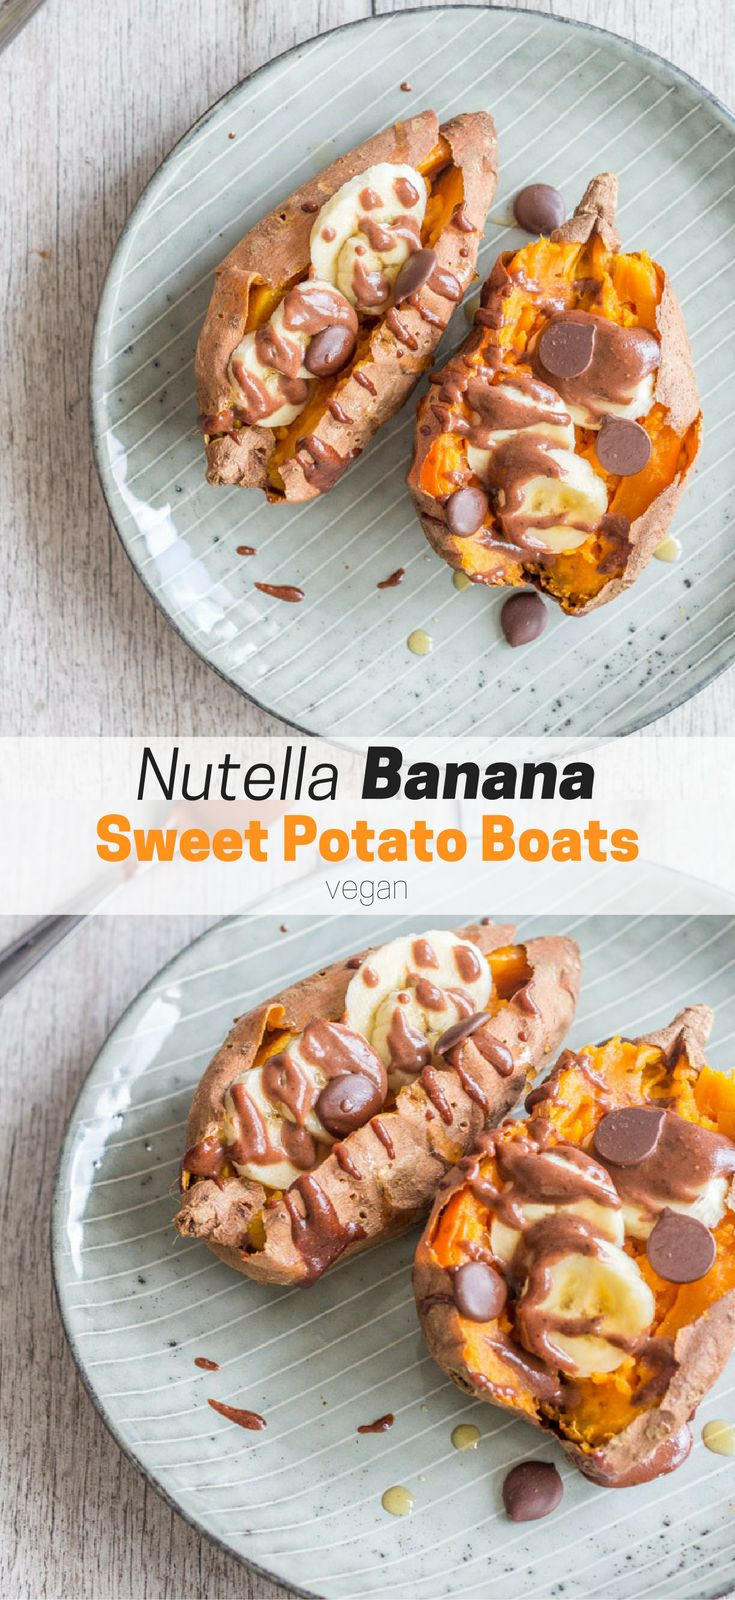 These Nutella Banana Sweet Potato Boats are vegan, perfectly sweet, filling, healthy, and SO delicious. Great for breakfast or dessert! Healthy vegan recipes|healthy| vegan| snack| dessert| recipes| vegetarian| The Mostly Healthy | chocolate